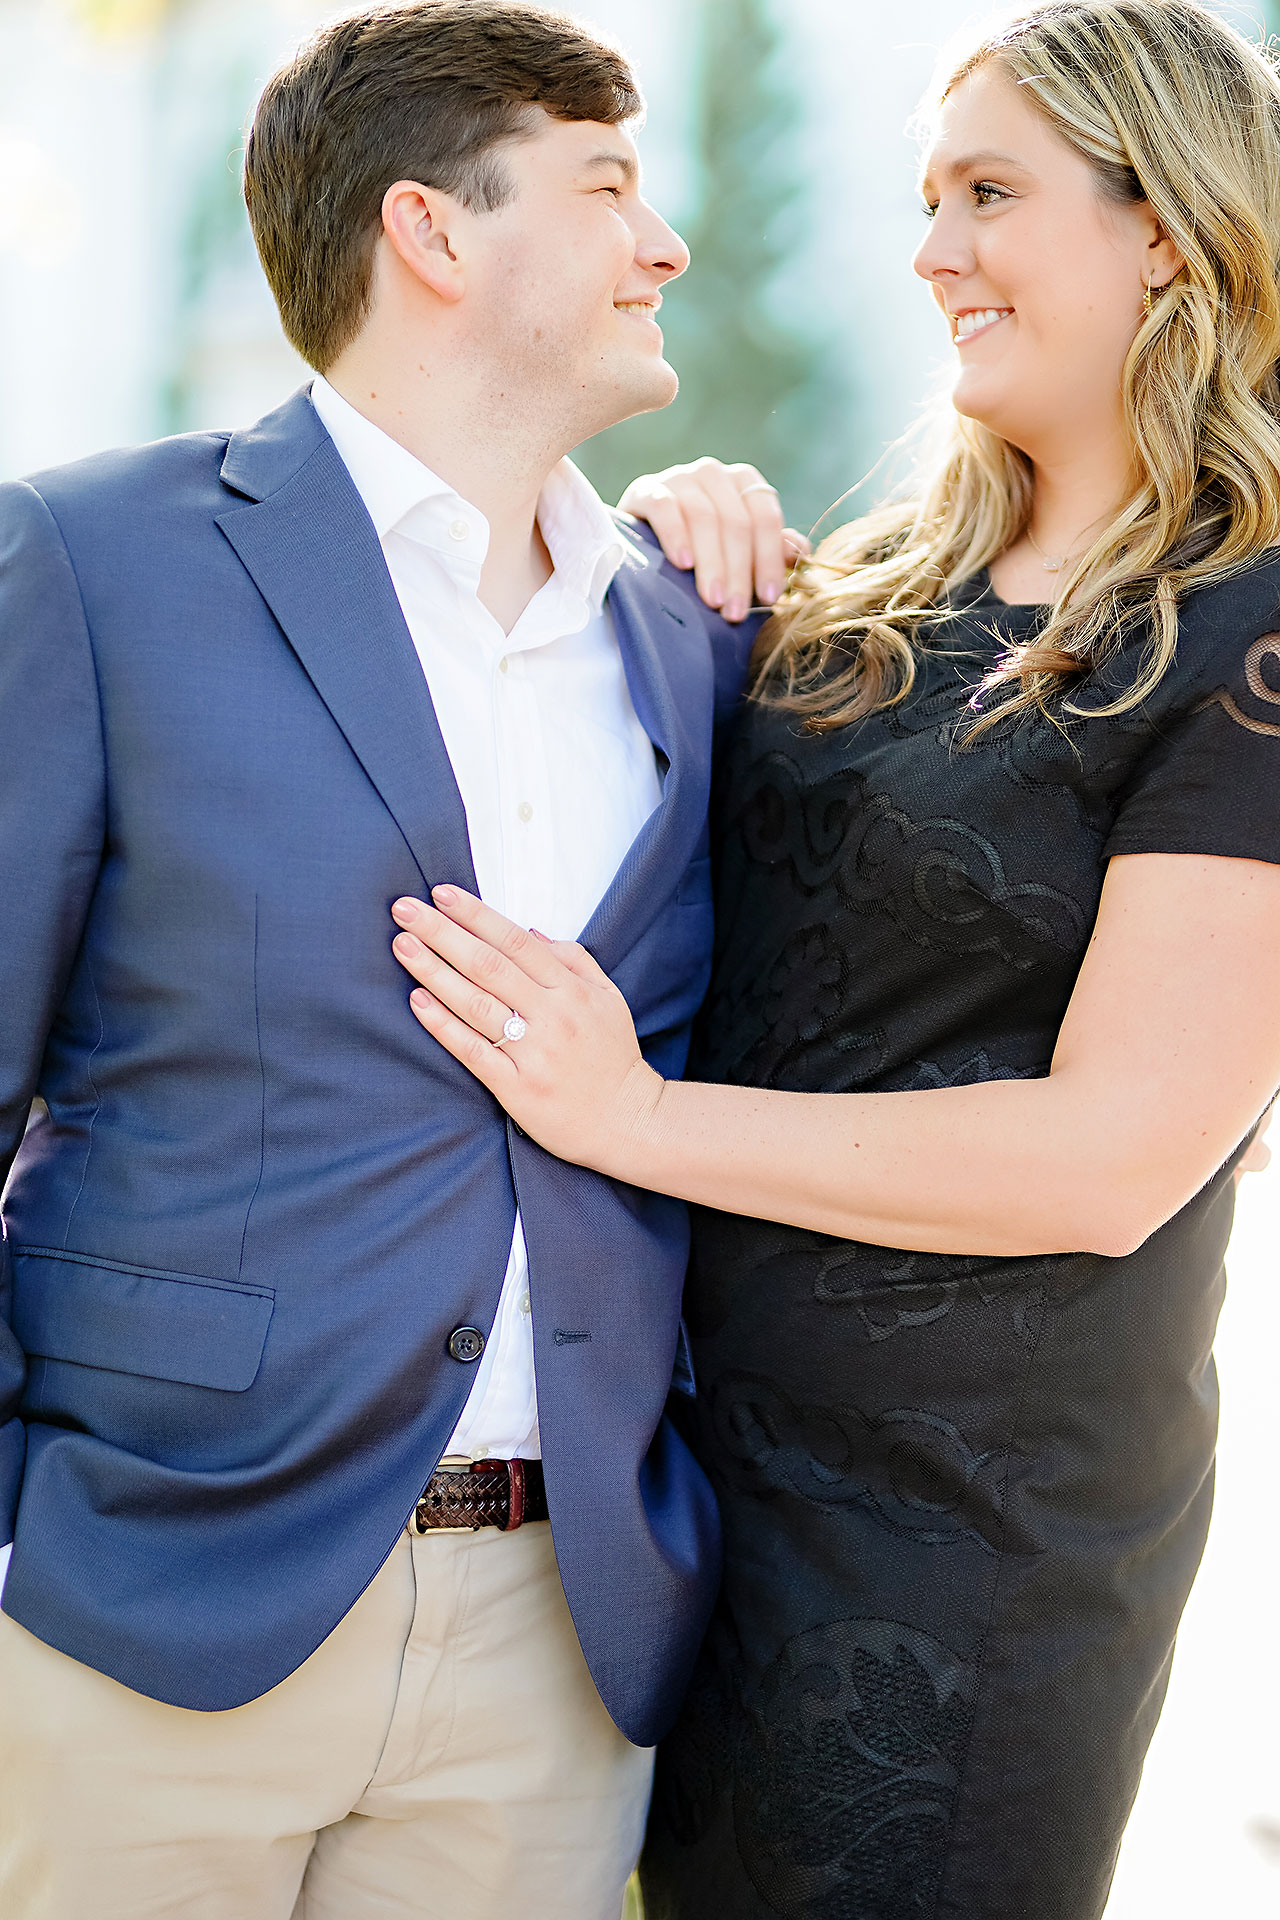 Taylor Case Newfields Engagement Session 029